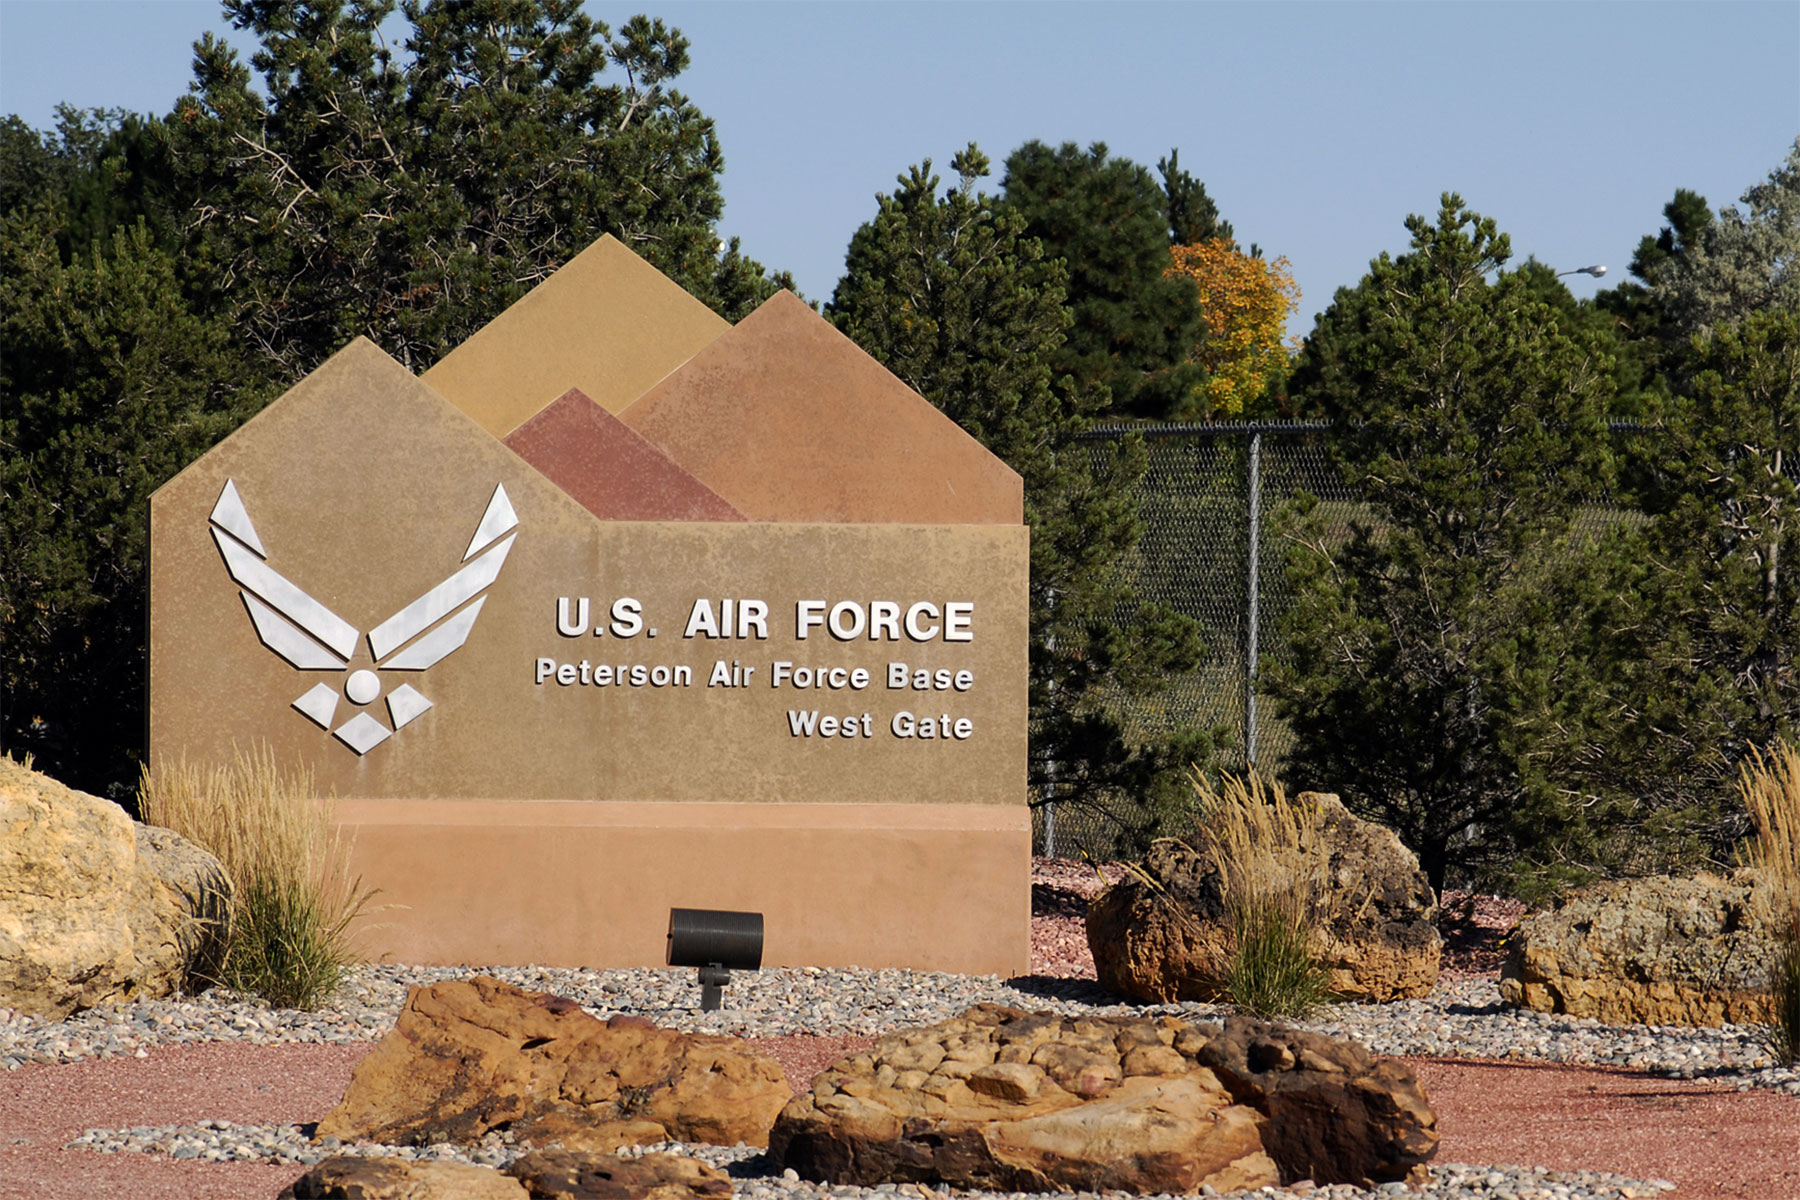 Military Bases Linked to Cancer and Health Problems